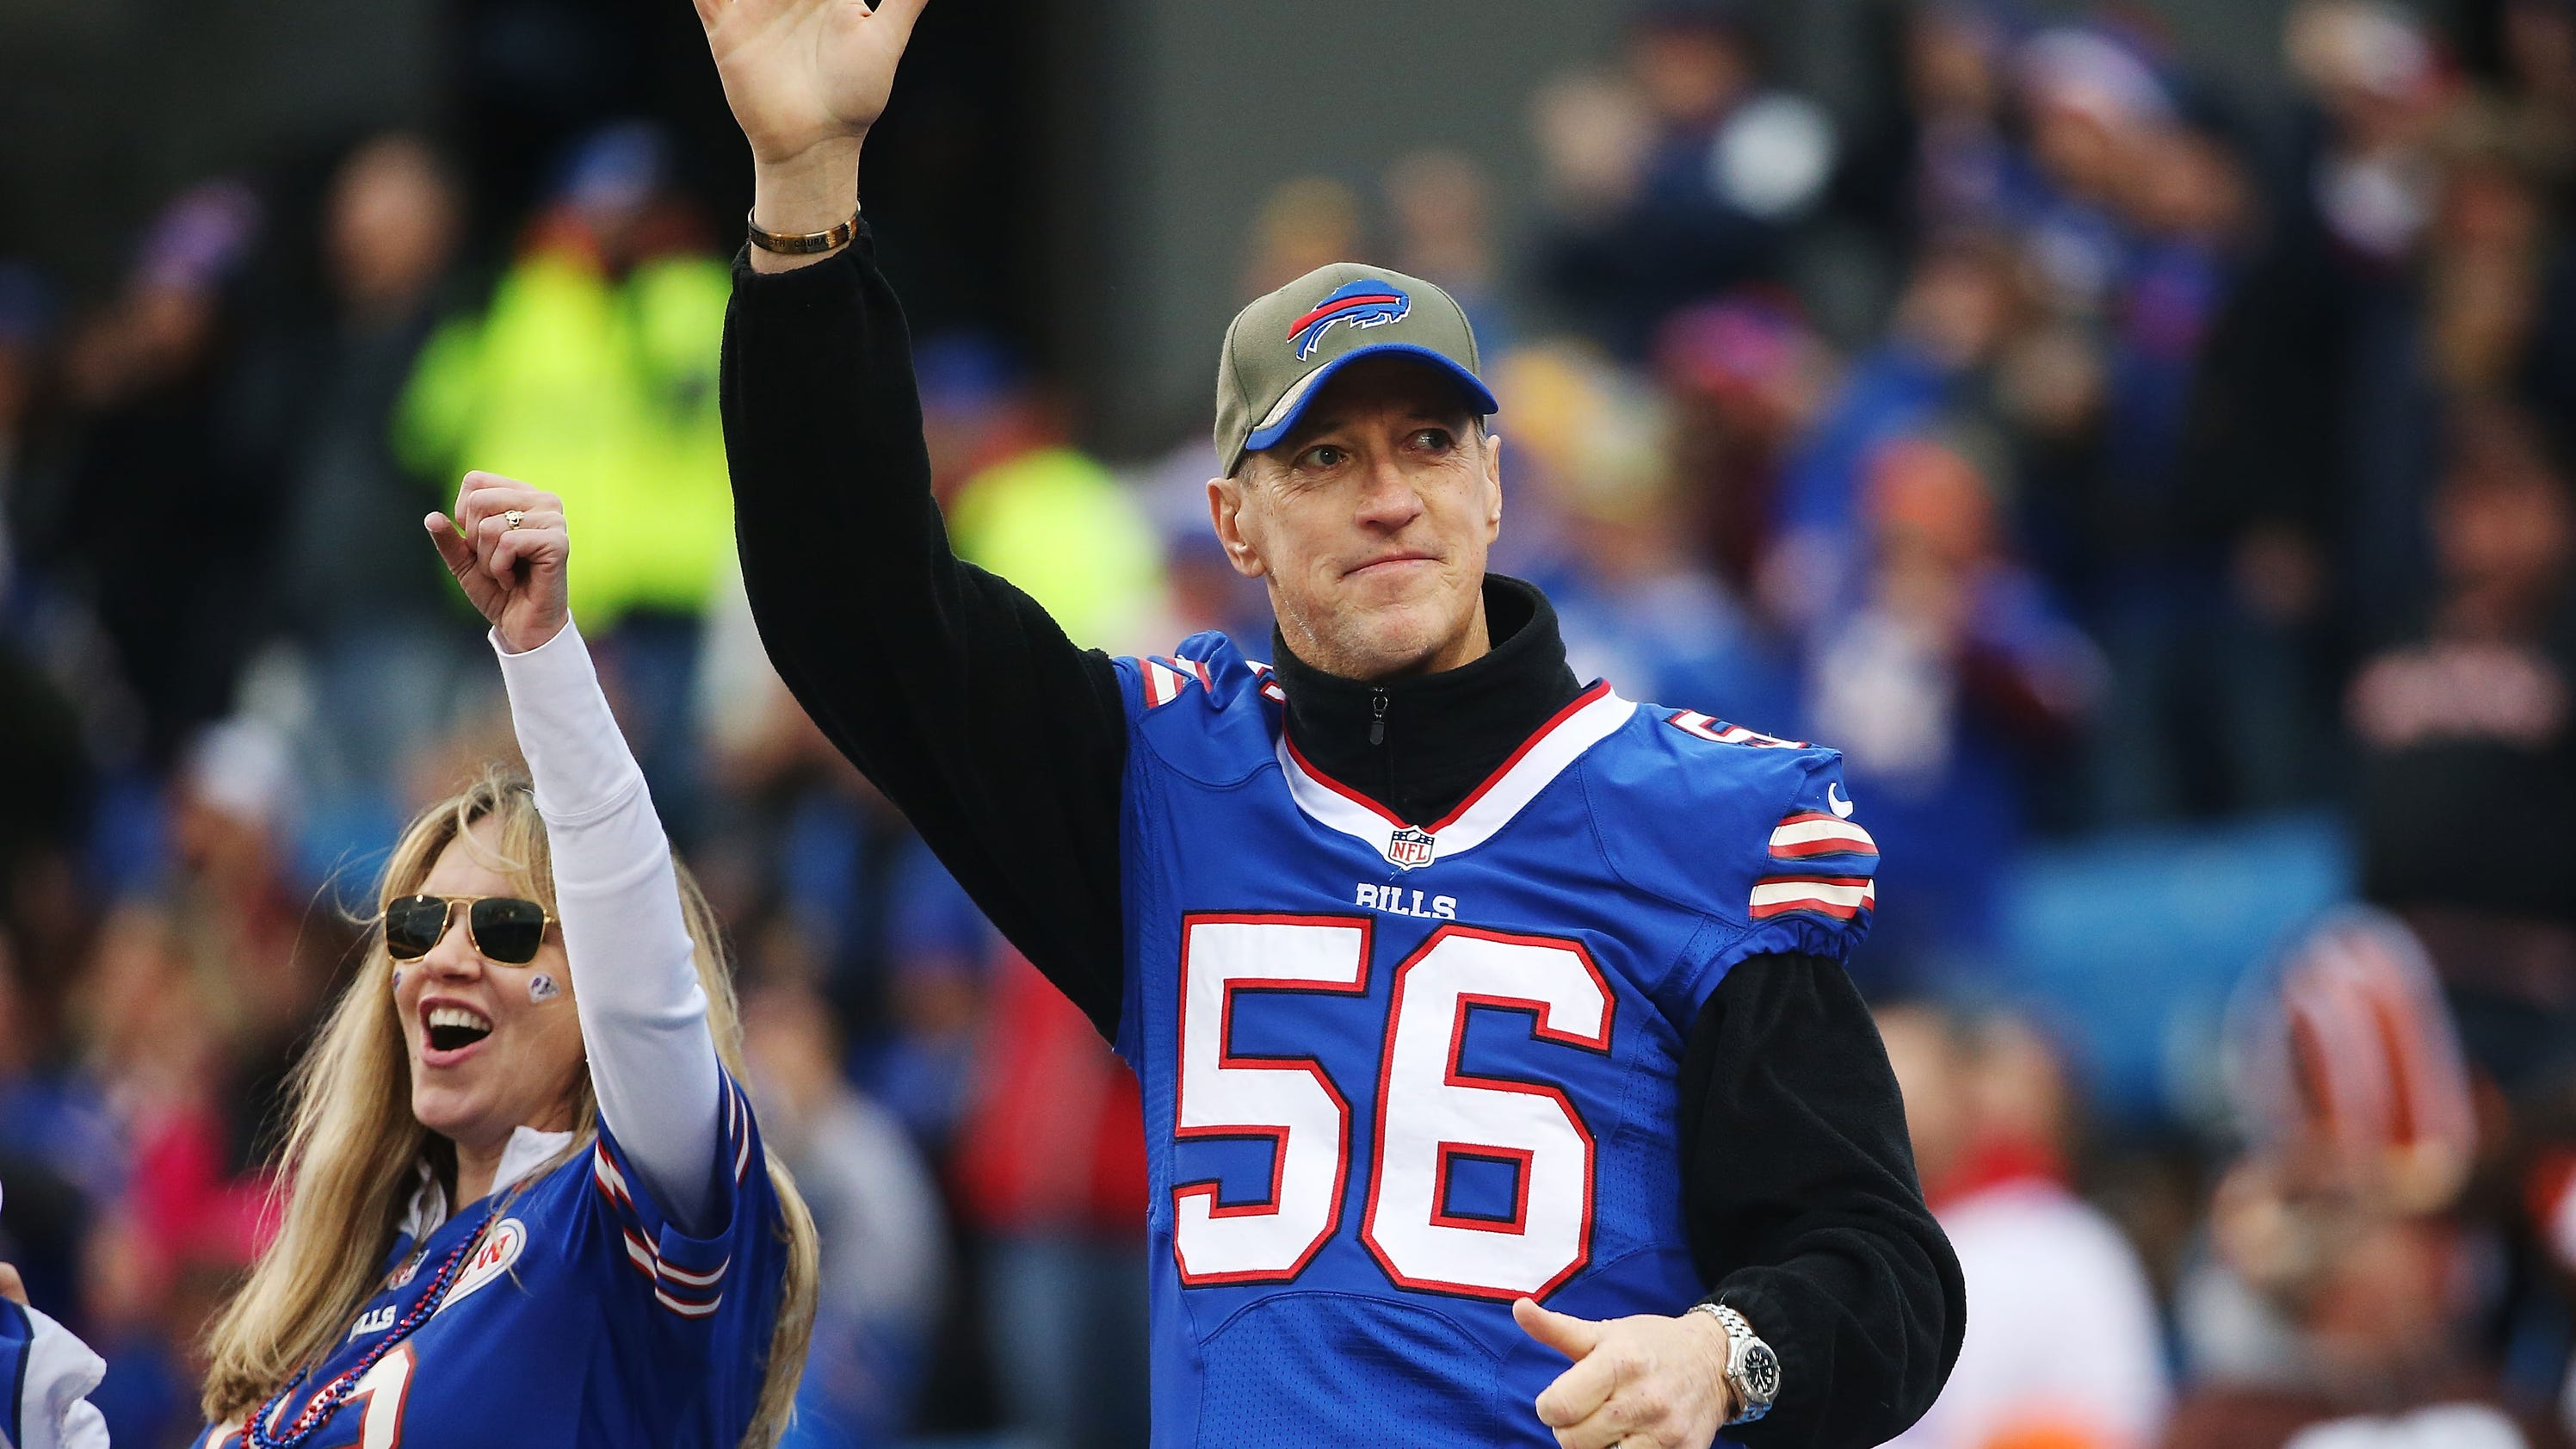 bills fans raise close to  139 000 to support darryl talley